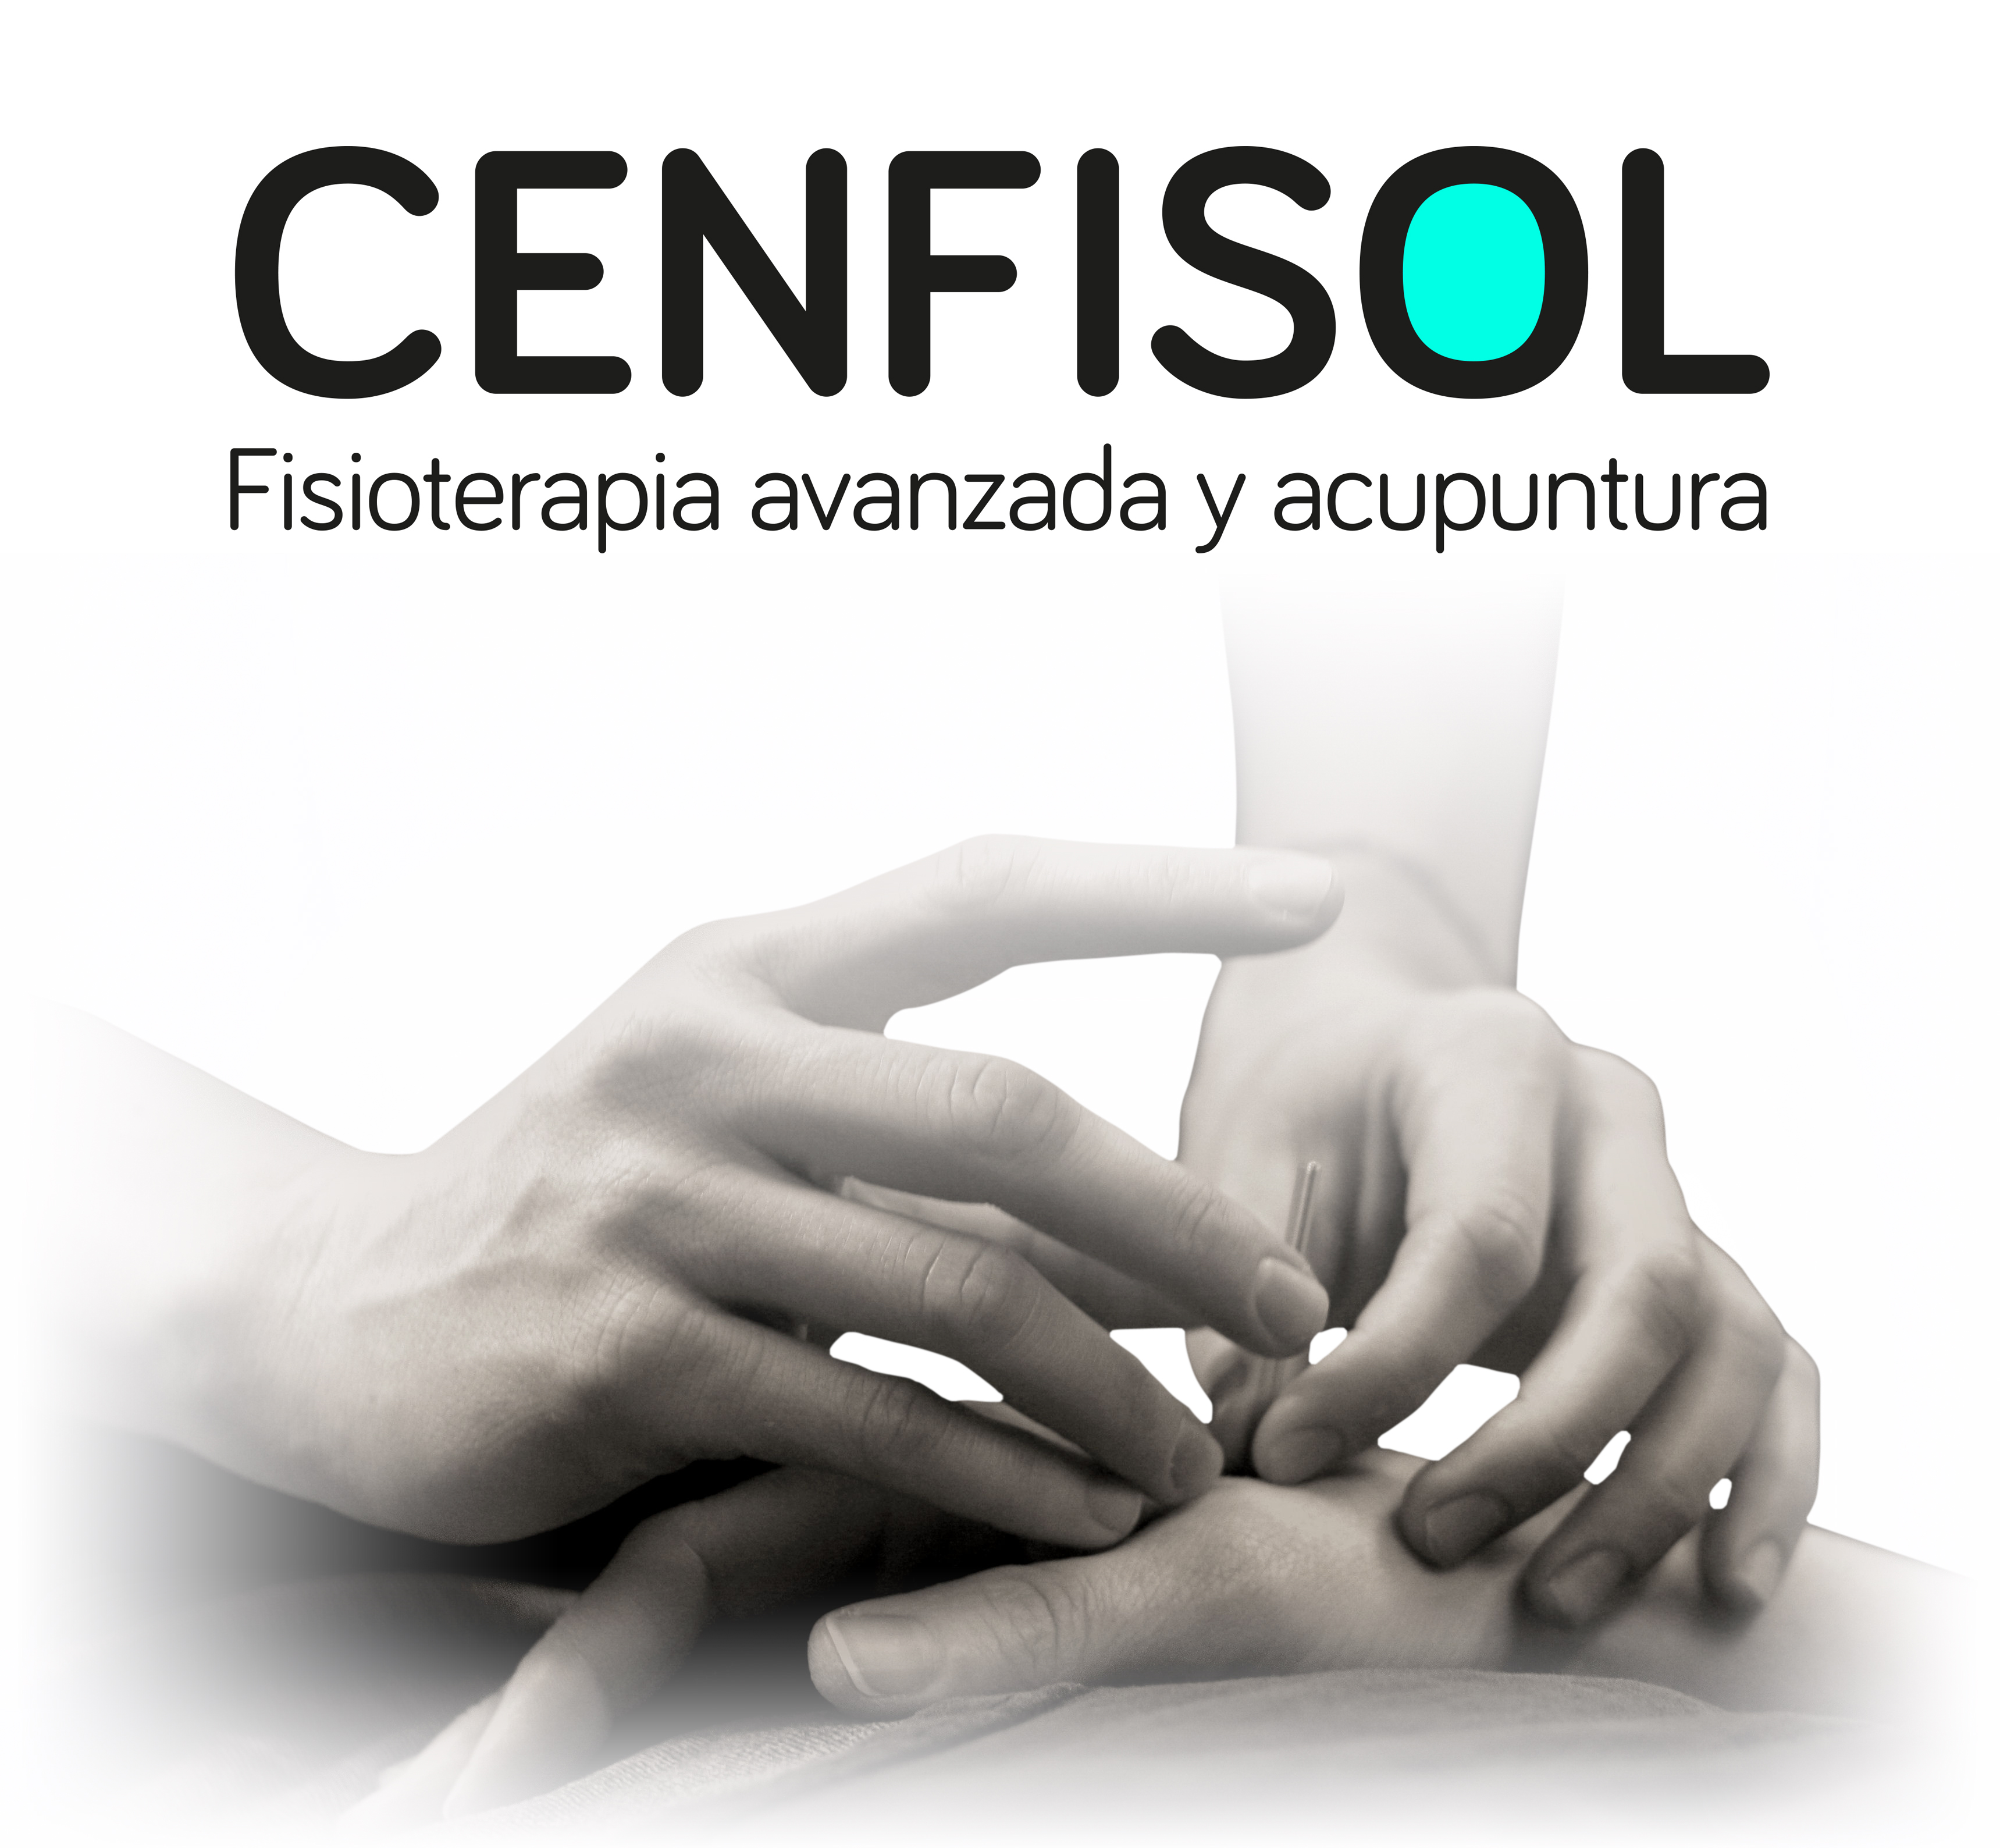 cenfisol